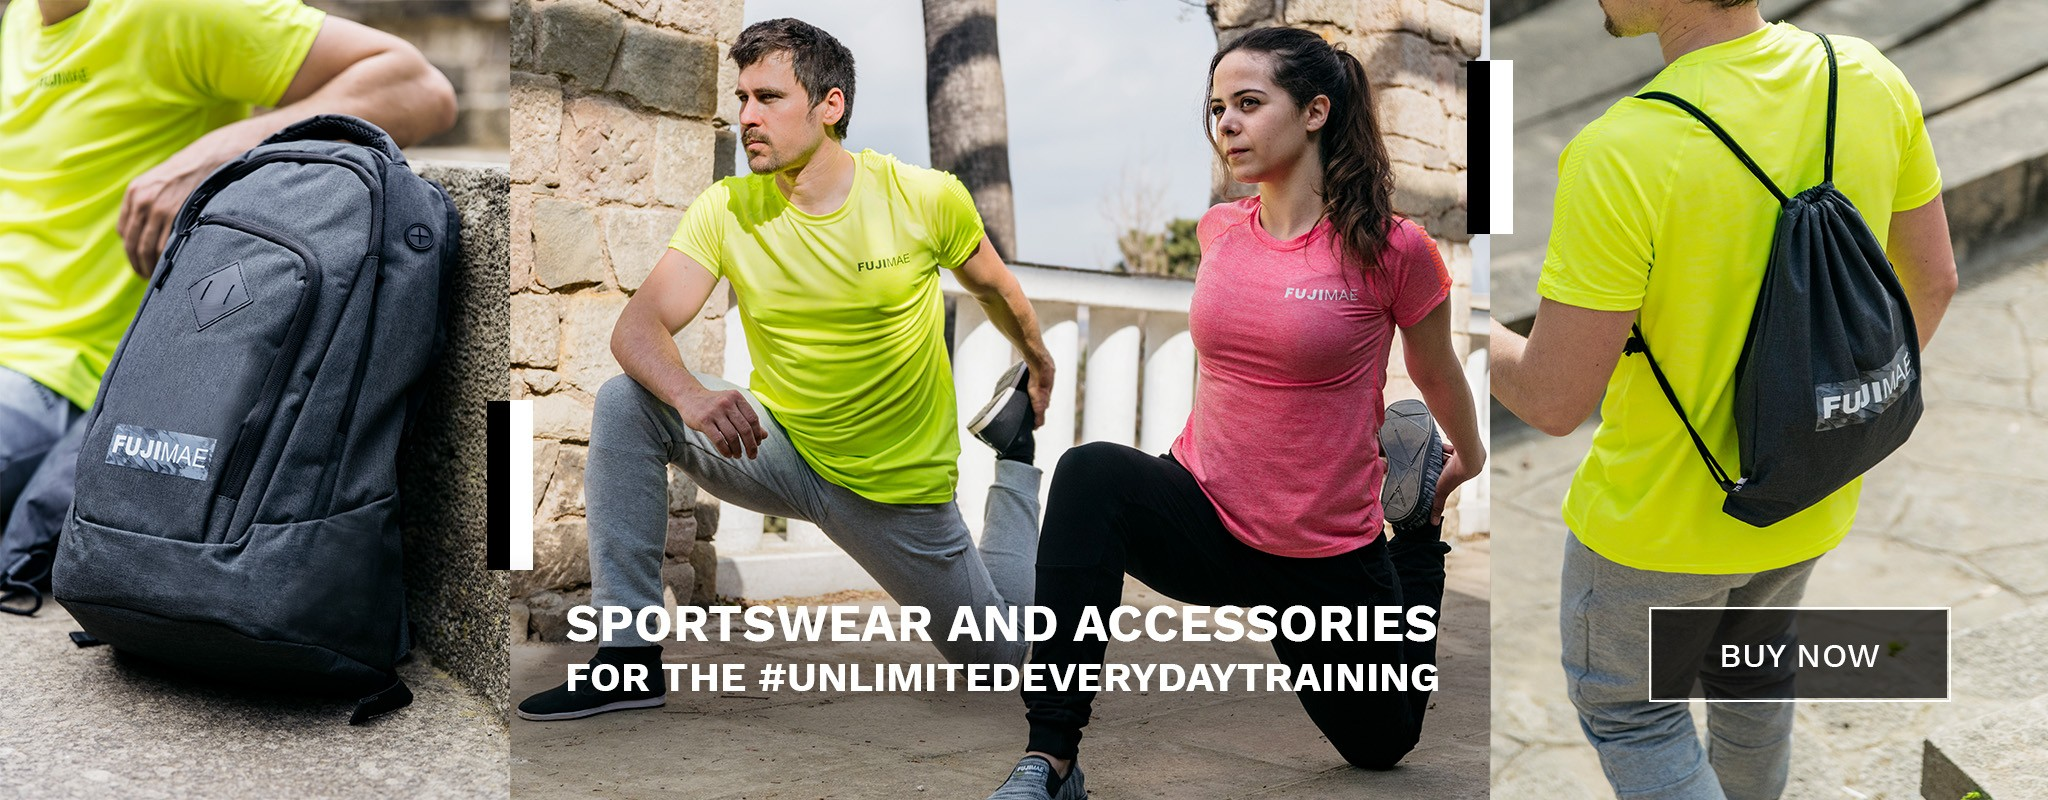 Sportswear and accessories